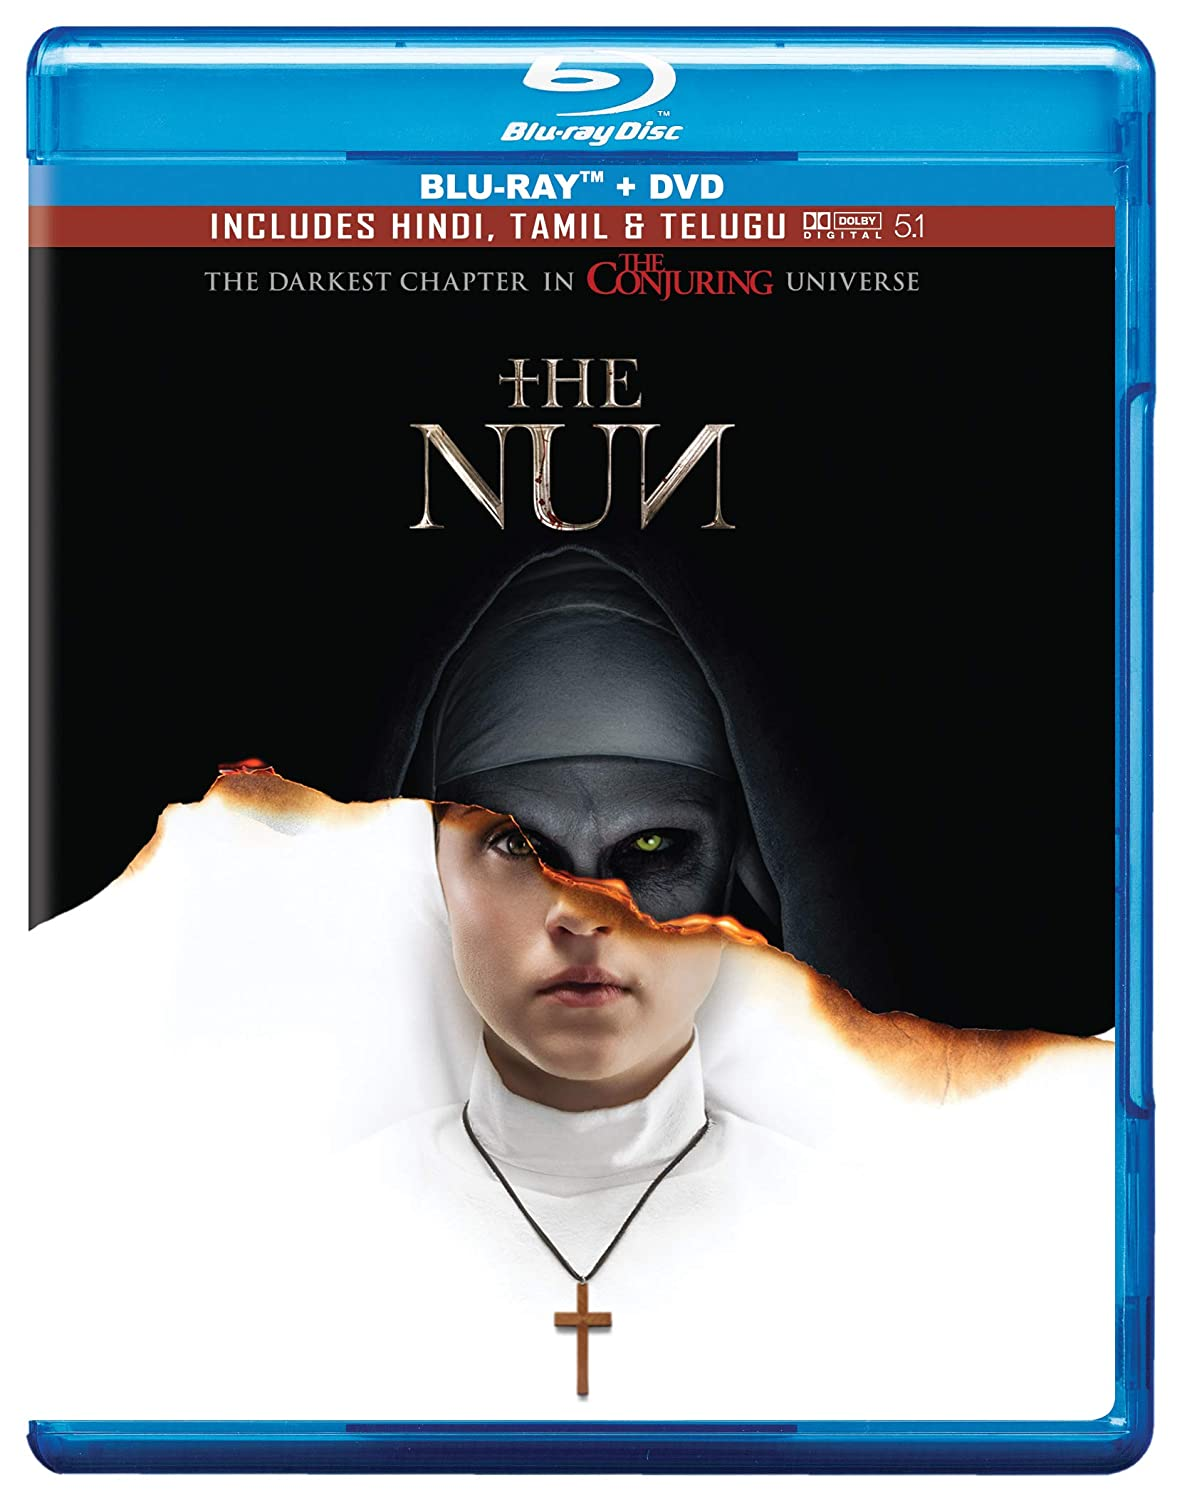 Amazon.in: Buy The Nun (Blu-ray + DVD) DVD, Blu-ray Online at Best Prices  in India | Movies & TV Shows